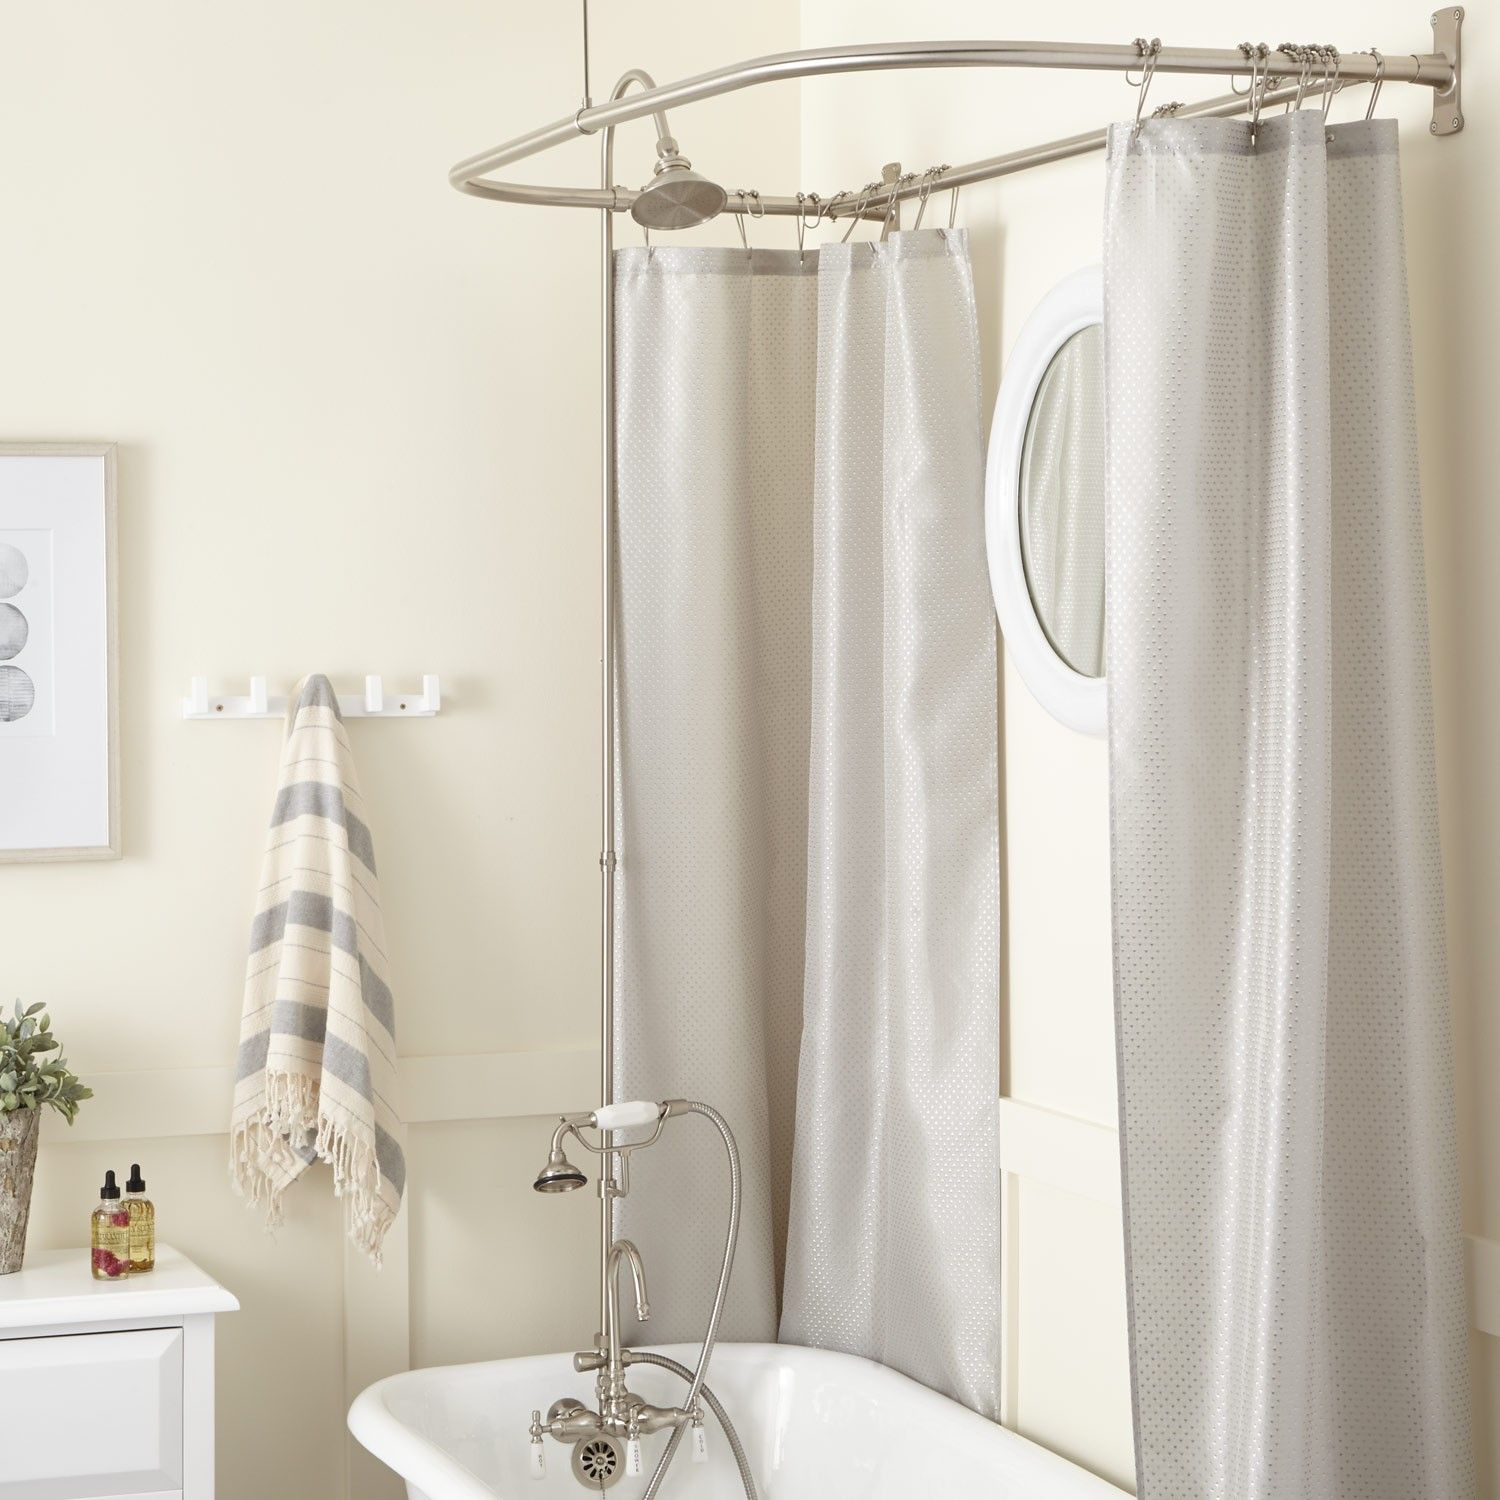 Gooseneck Clawfoot Tub Shower Conversion Kit - D Style Shower Ring ...